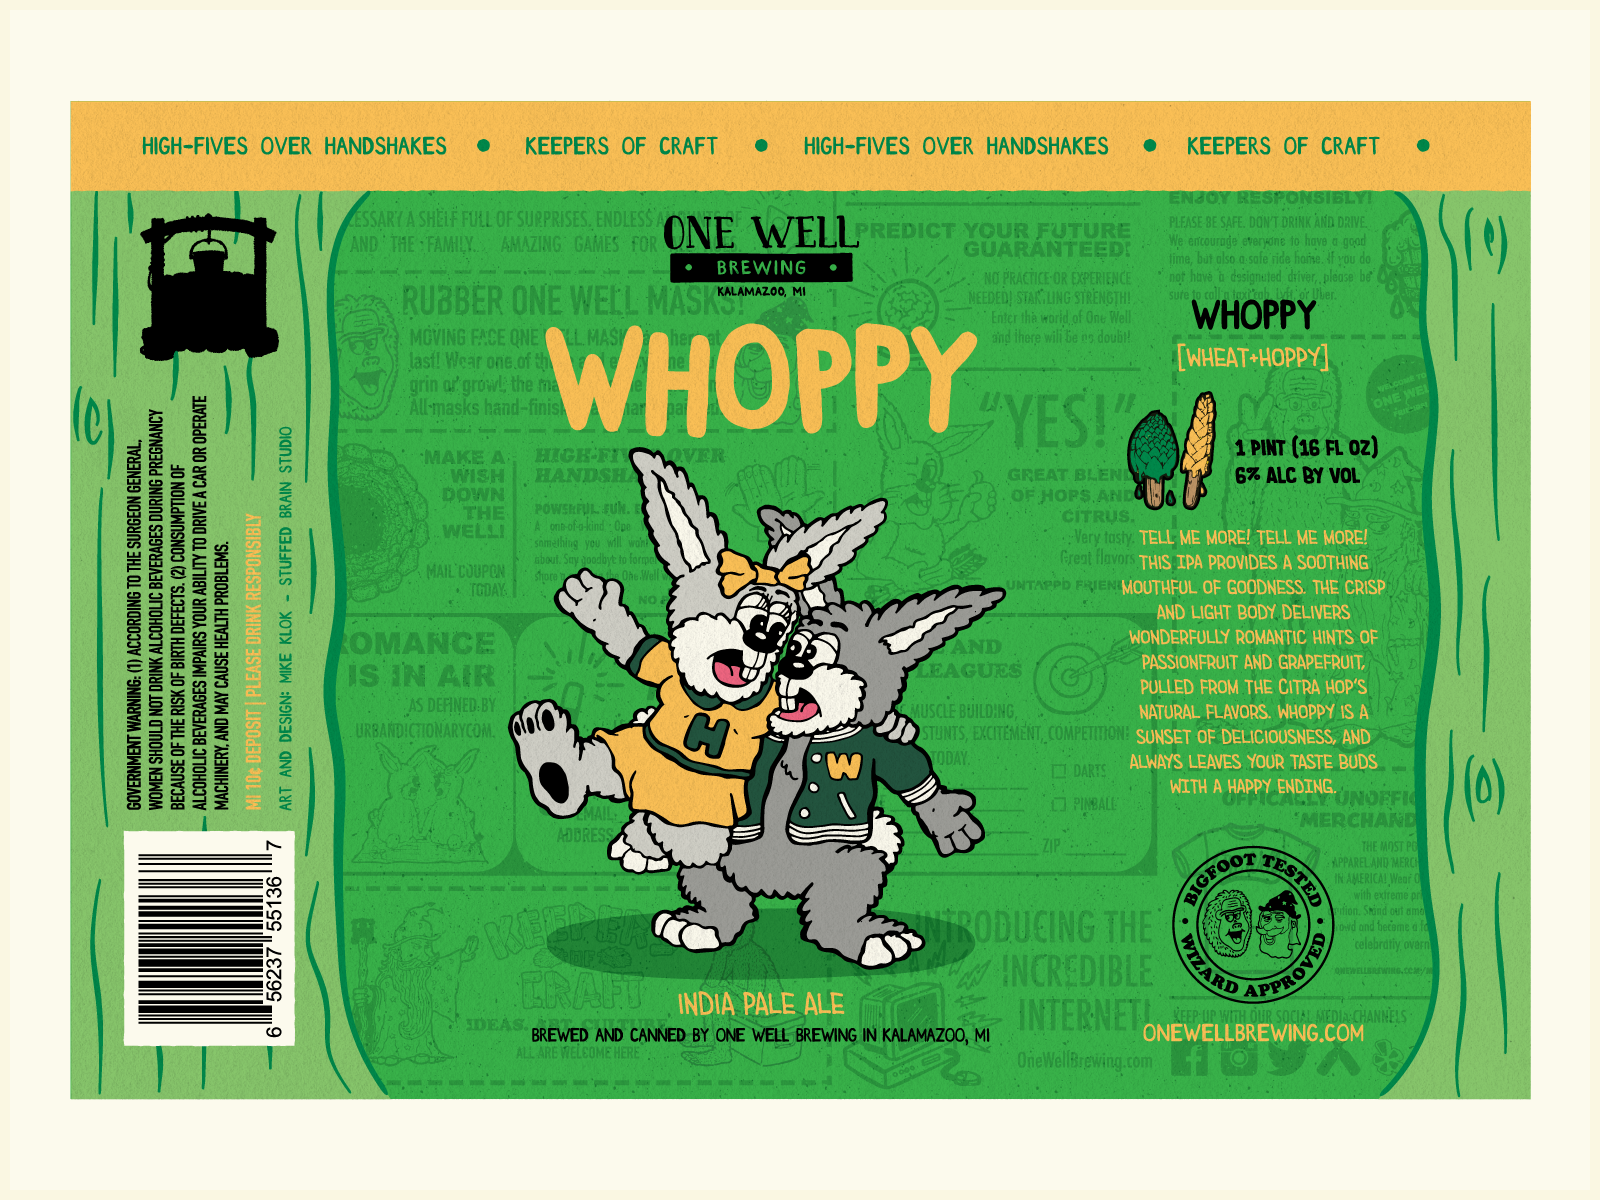 STUFFED_BRAIN_ONE_WELL_BREWING_CAN_WHOPPY_3.png